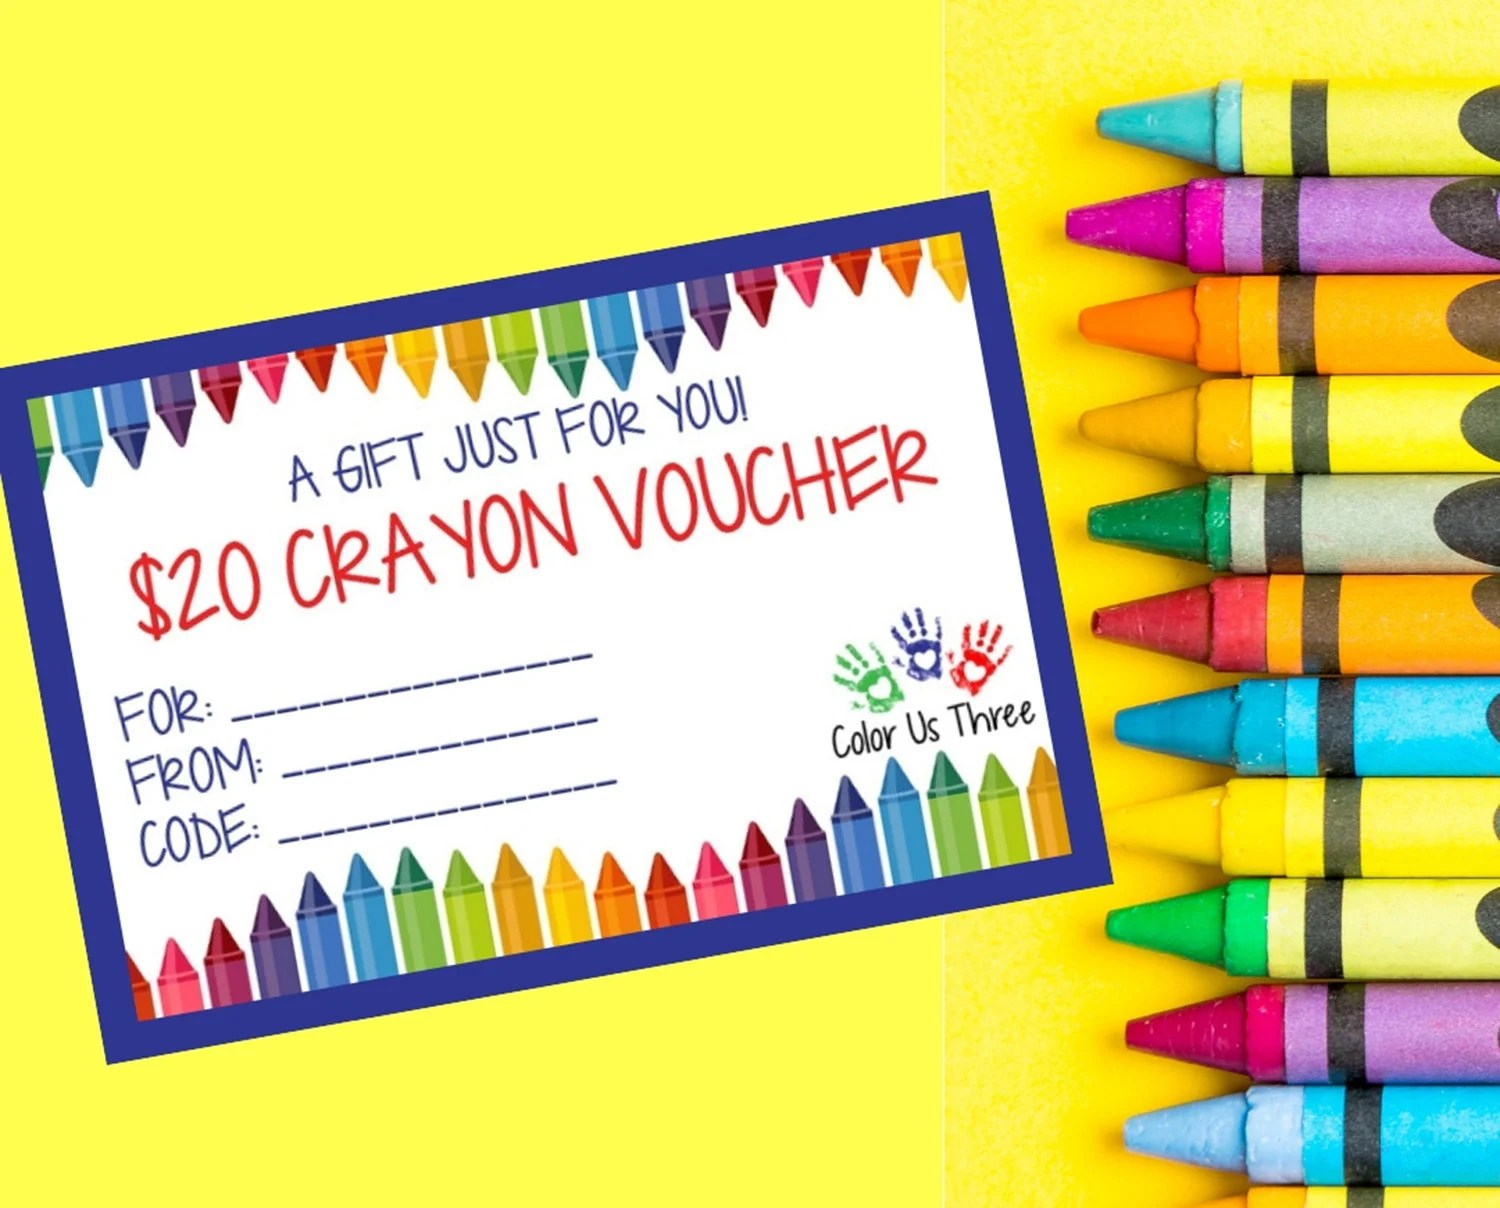 Custom Crayon Gift Certificate 20 USD Downloadable Gift Card Etsy